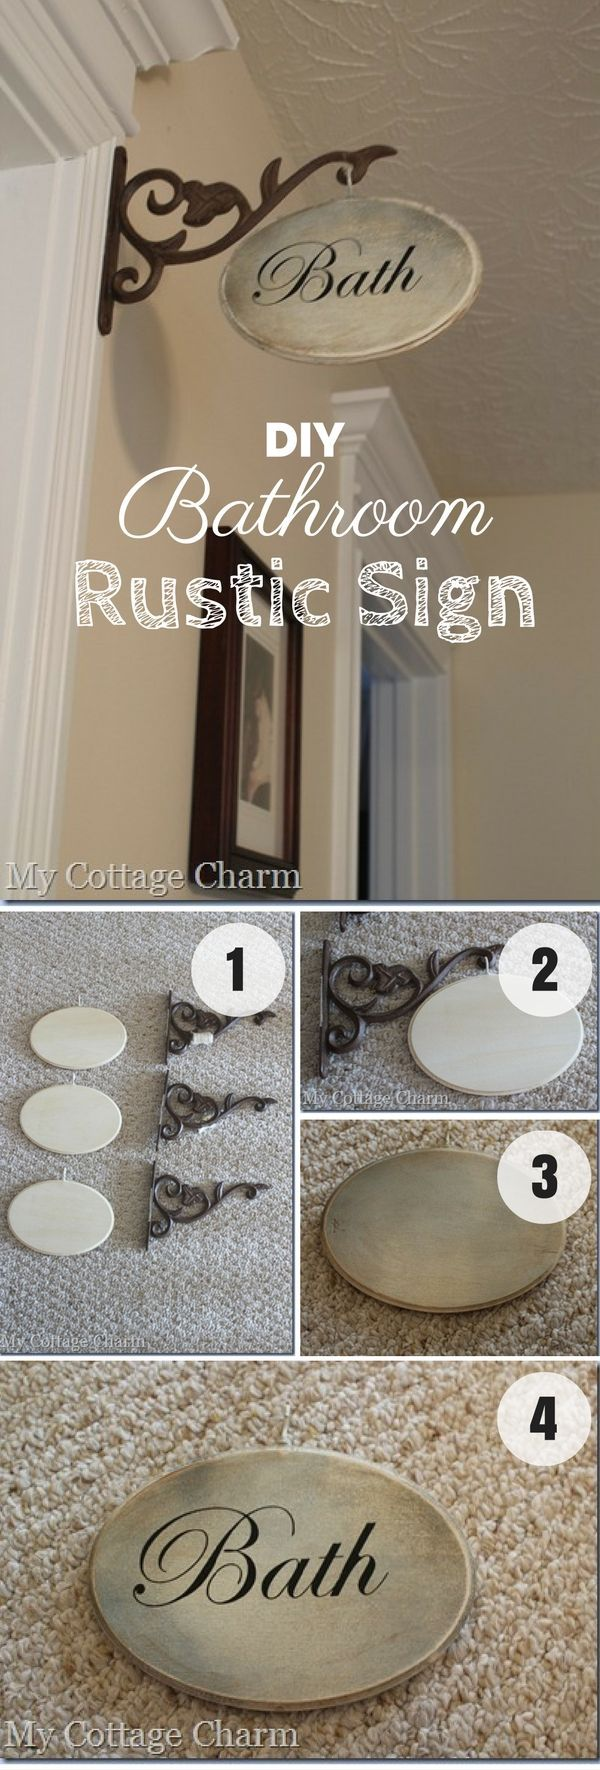 Paris bathroom decorating ideas - 20 Gorgeous Diy Rustic Bathroom Decor Ideas You Should Try At Home